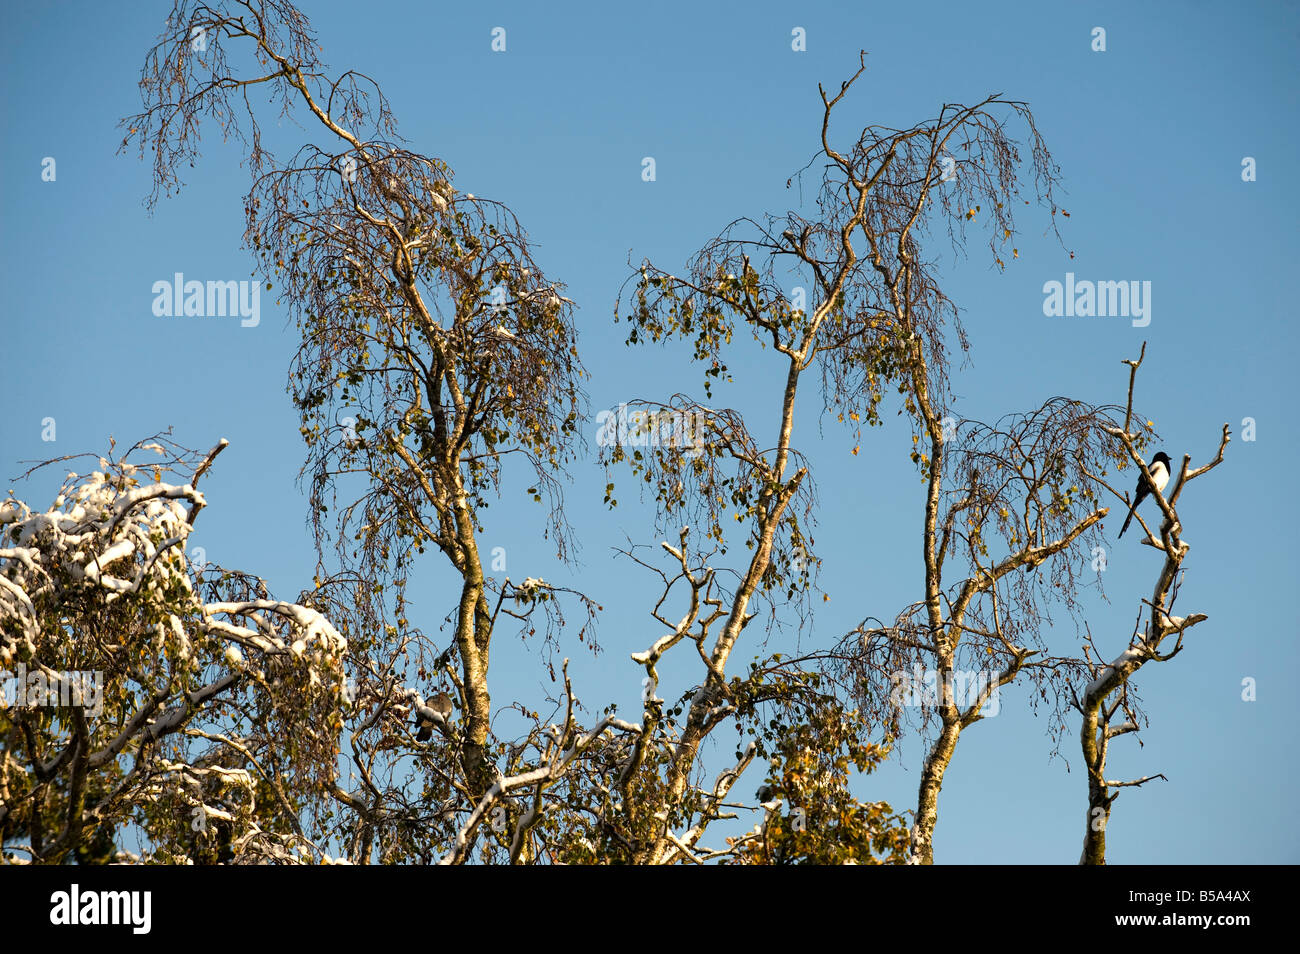 Snow on branches in October - 1 - Stock Image